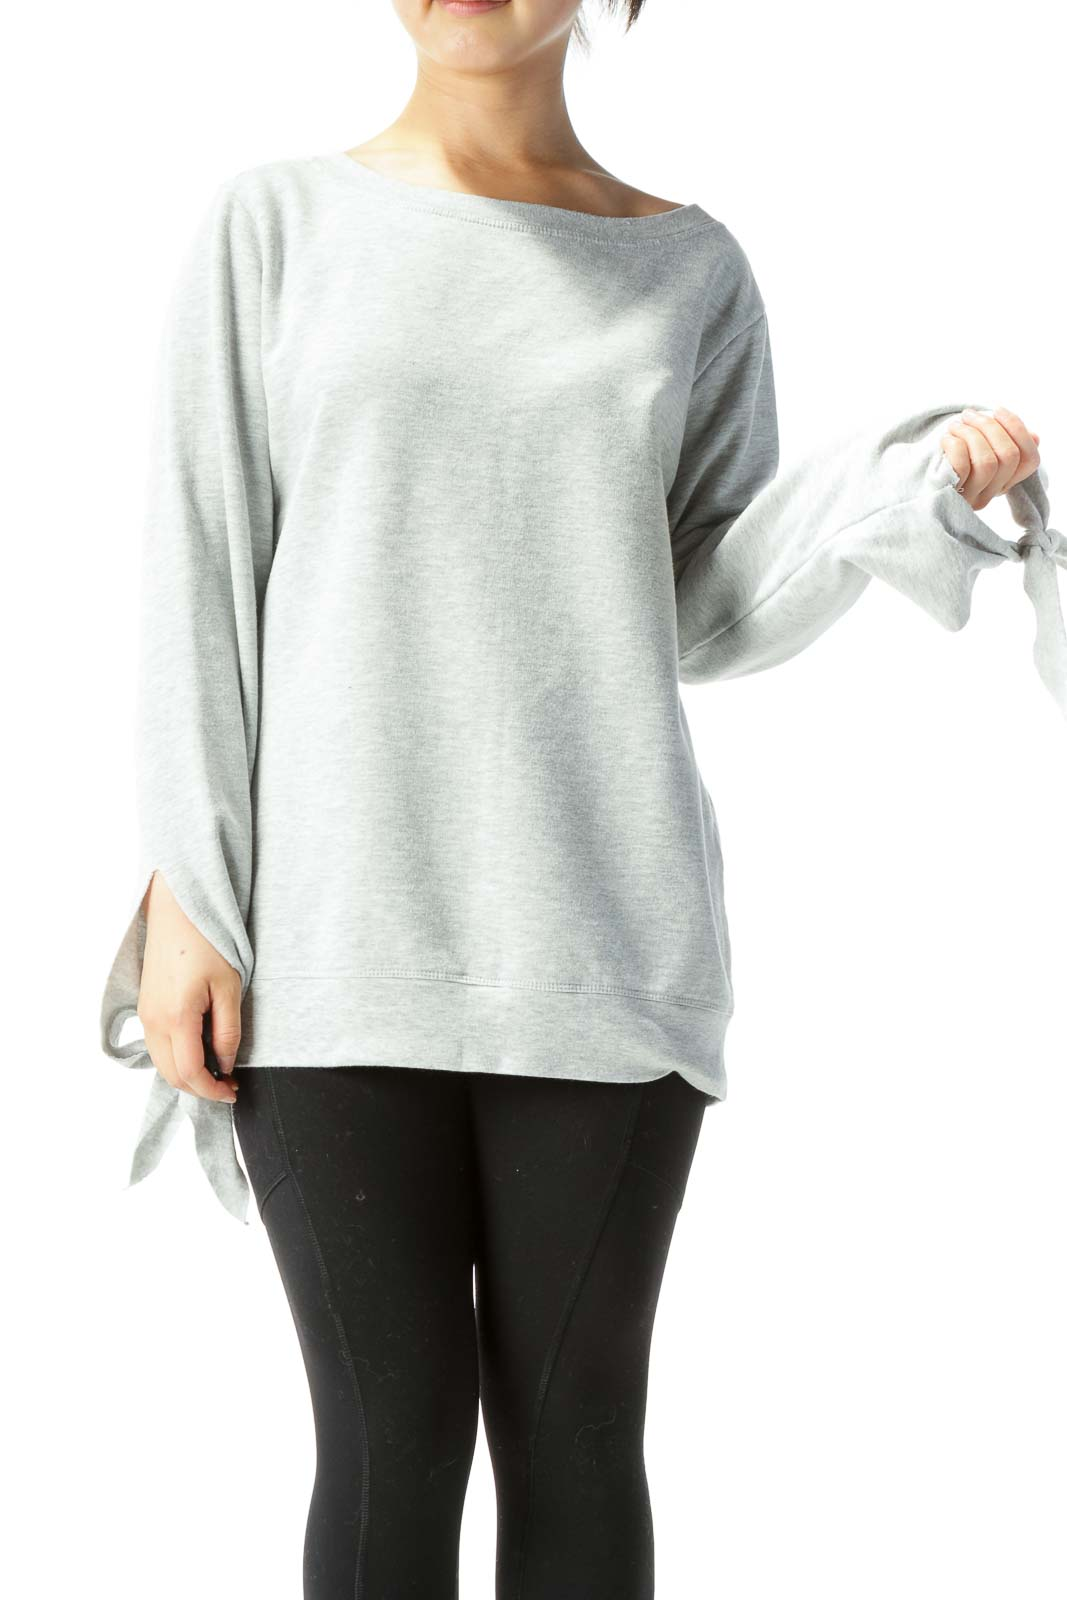 Heather Gray Long-Sleeve Sweatshirt w/ Ties on Wrists